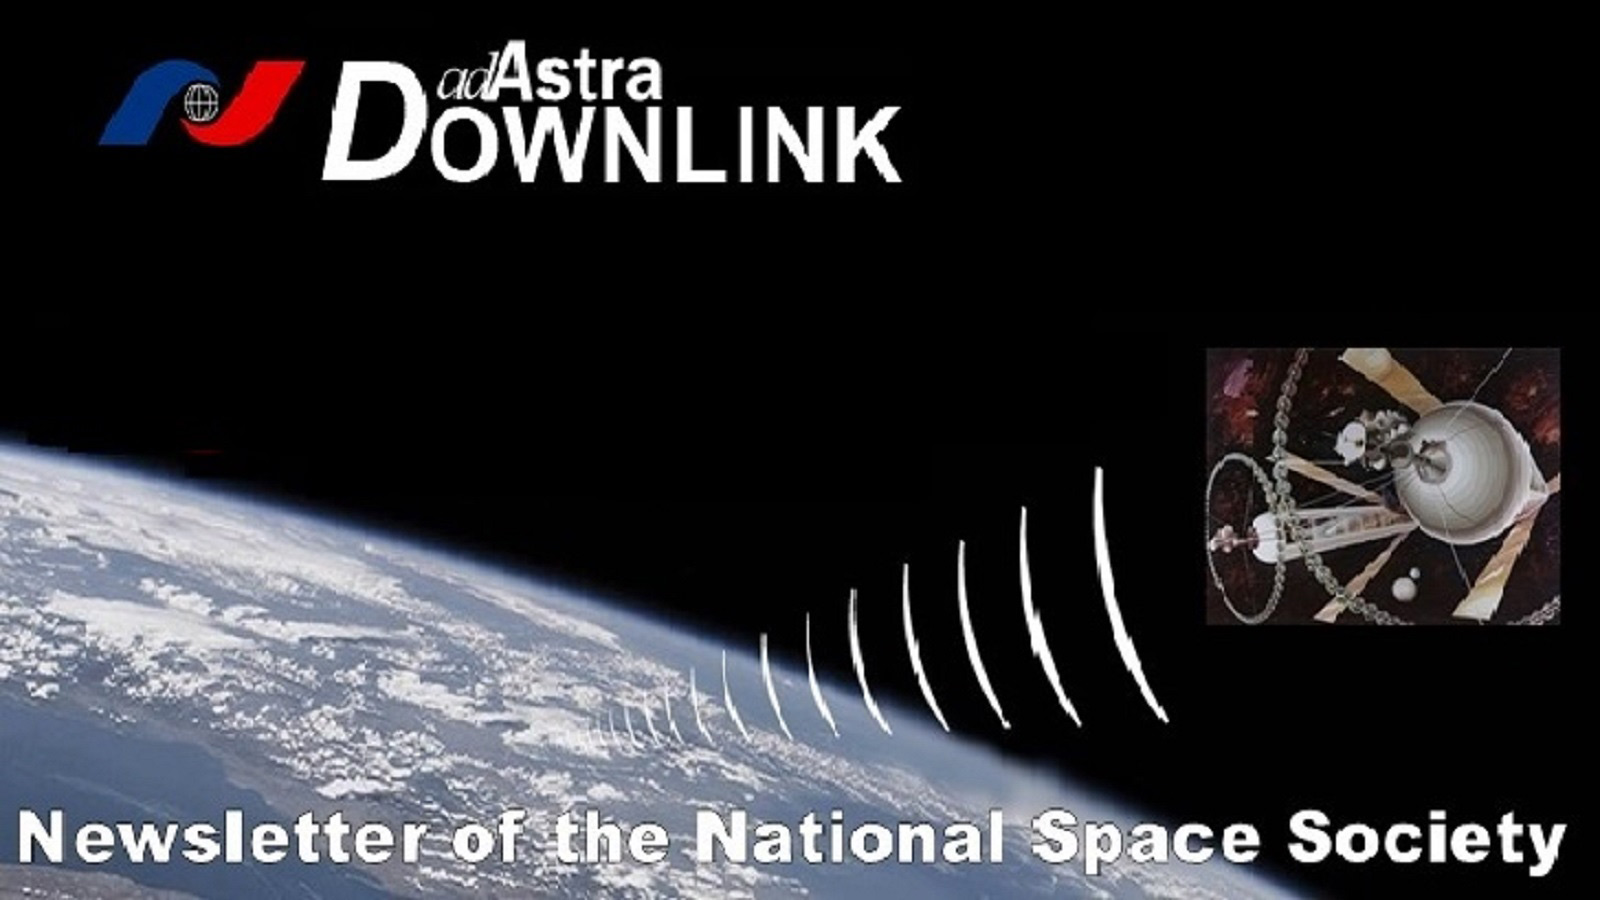 Ad Astra Downlink electronic newsletter for NSS